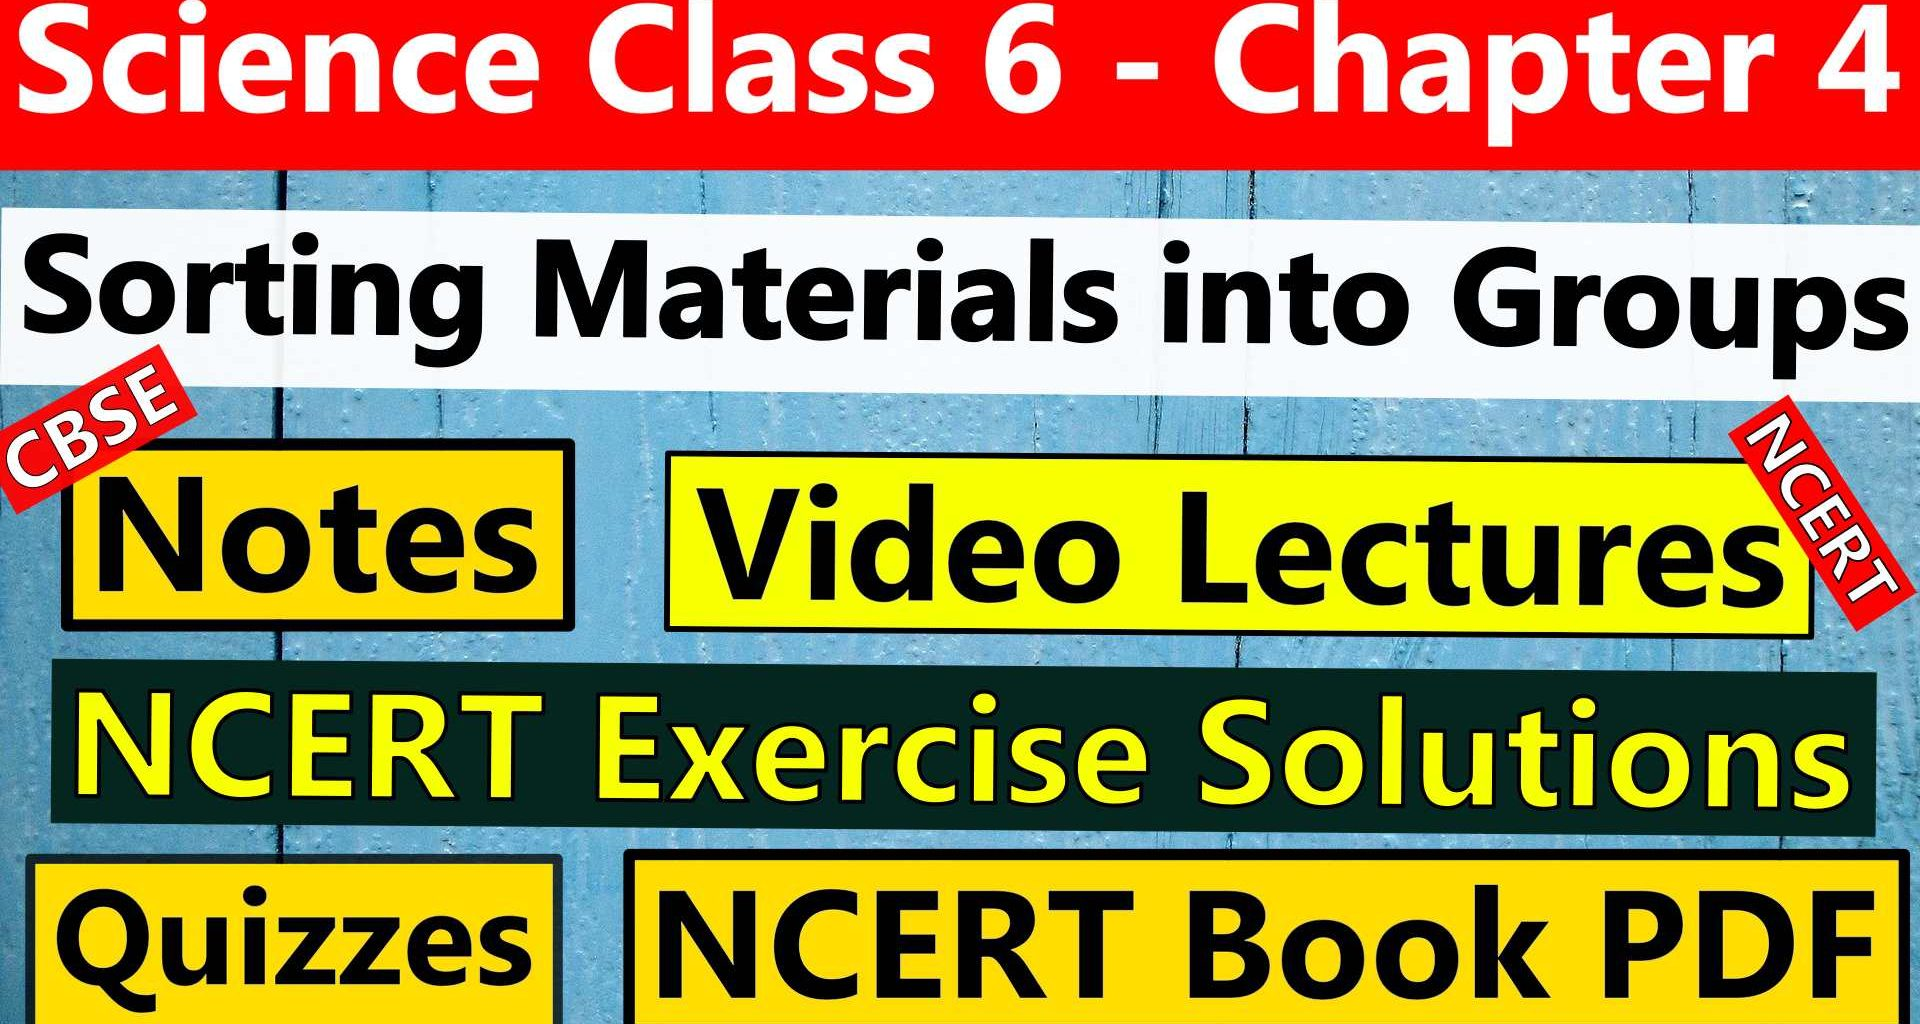 CBSE Science Class 6 - Chapter 4 - Sorting Materials into Groups- Notes, Video Lecture, NCERT Exercise Solution, Quizzes, NCERT Book Chapter 4 PDF Download.